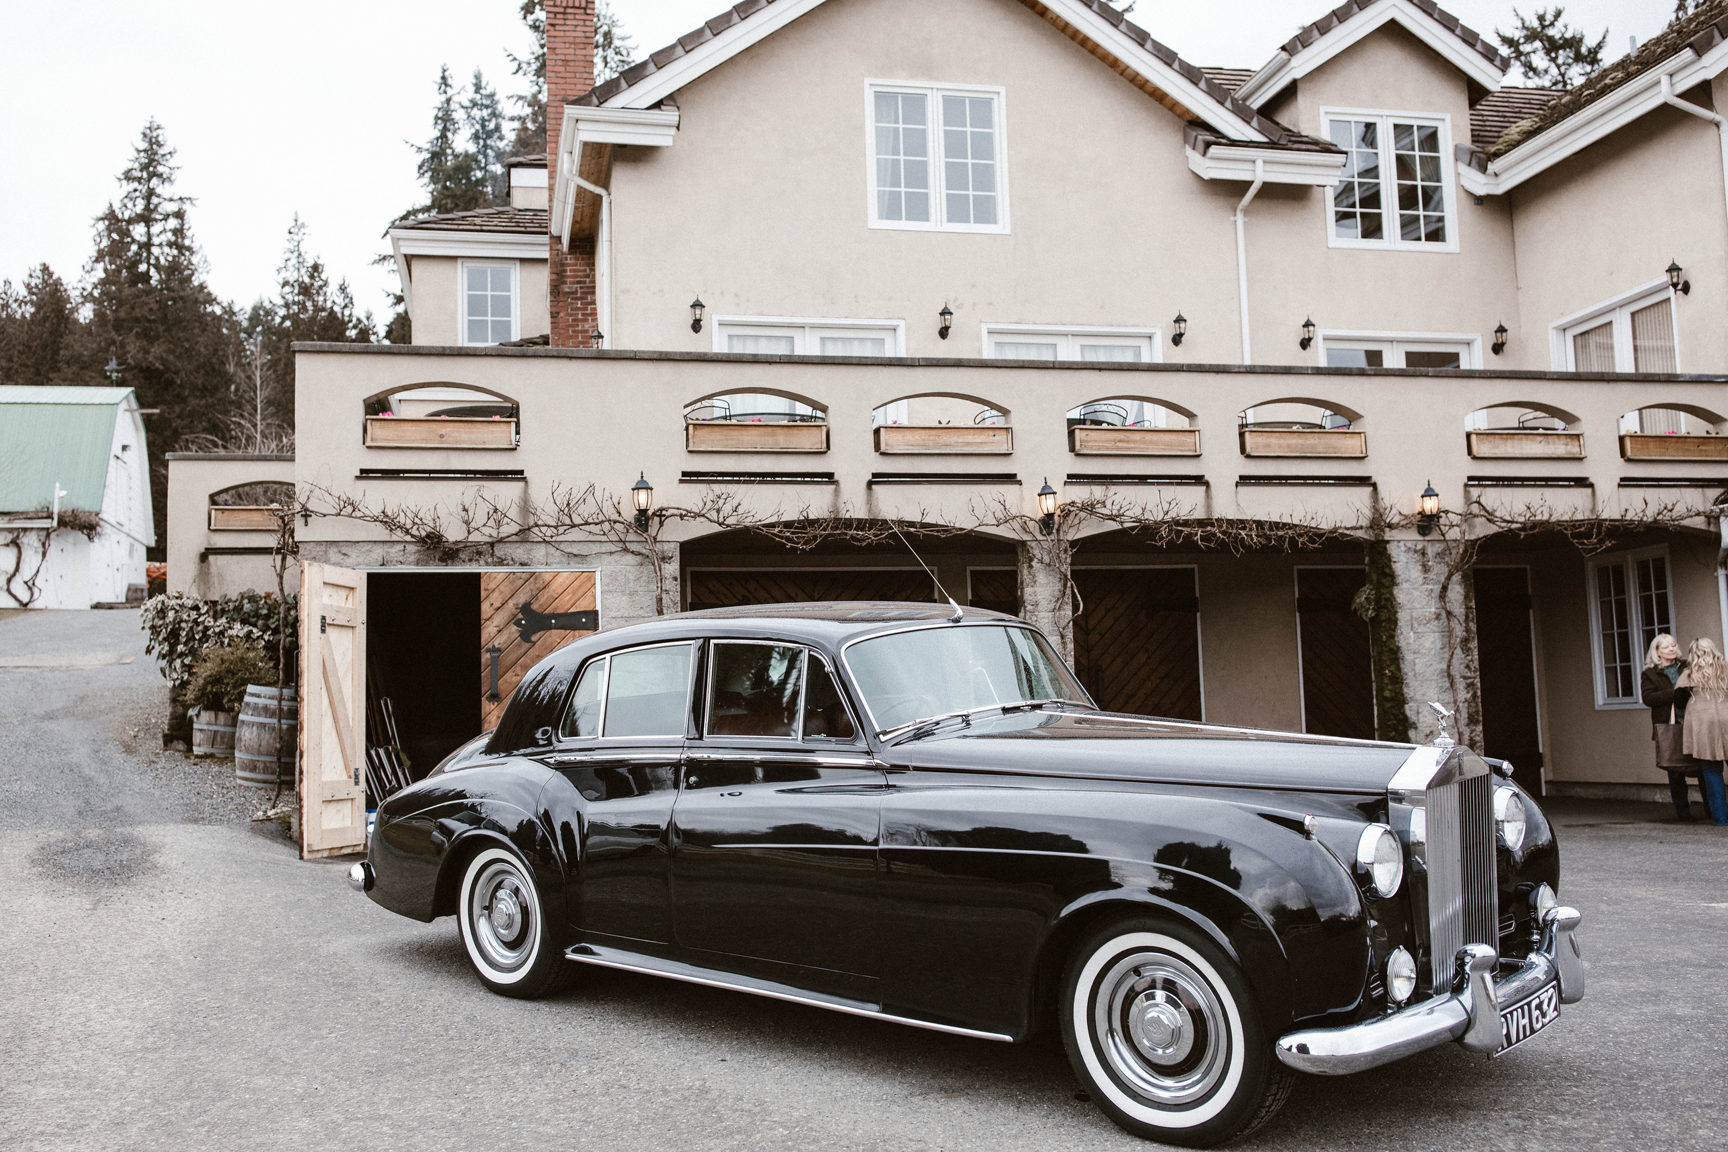 DeLille+Cellars_The+Chateau_Woodinville_2017_Weddings+In+Woodinville153.jpg